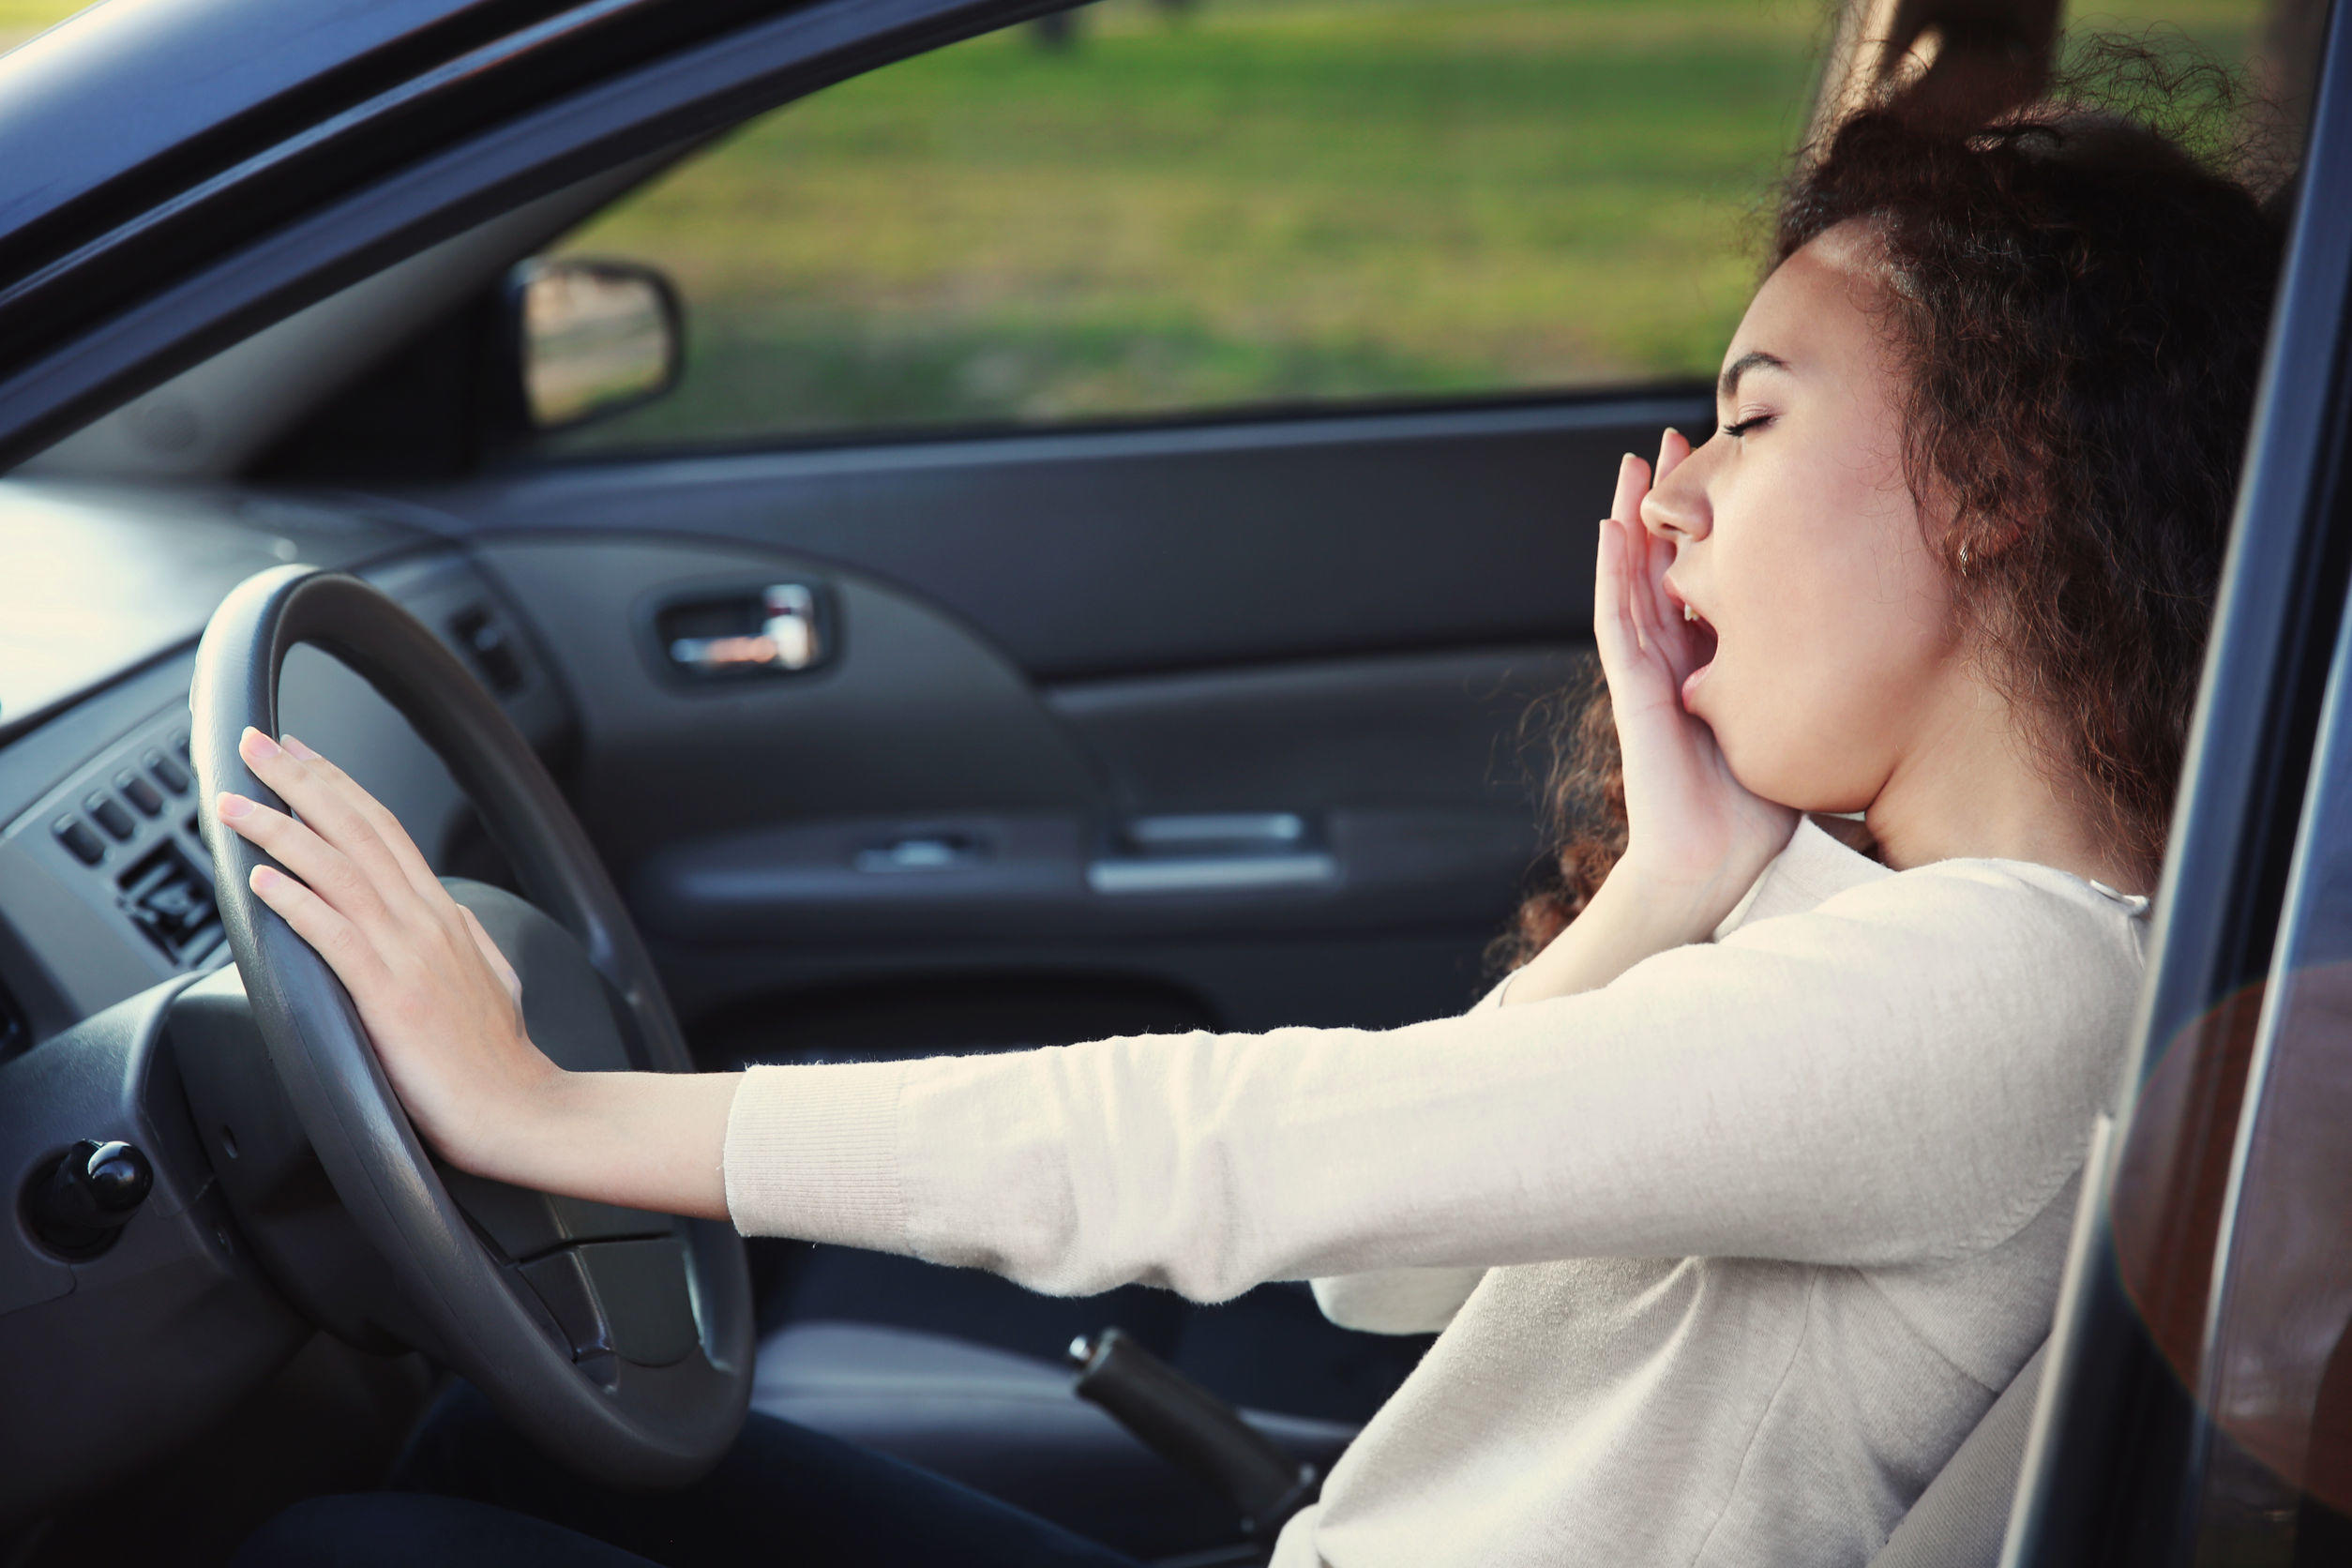 95971900 – a woman feeling sleepy and yawning in the car